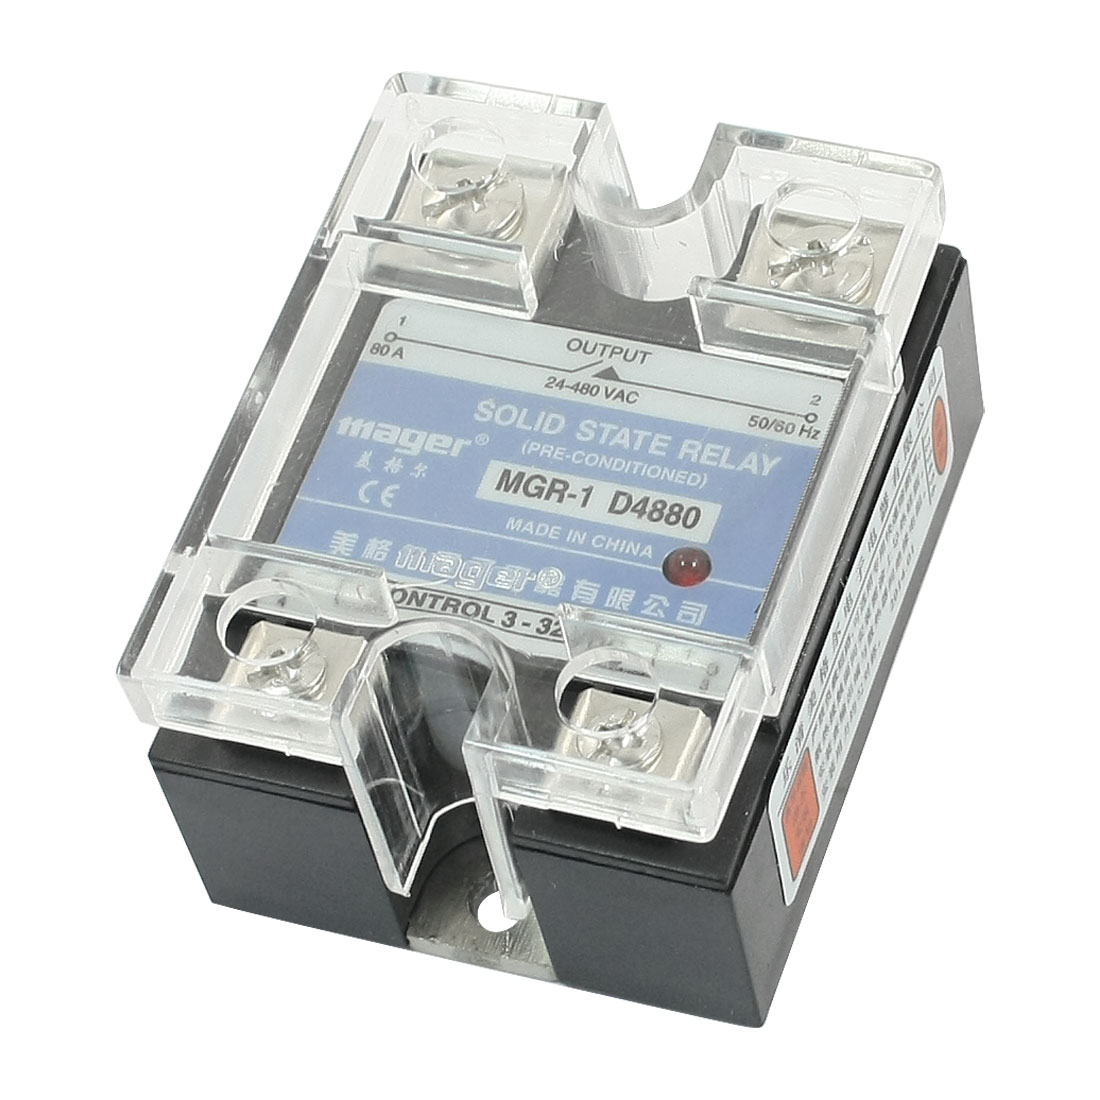 DC-AC 3-32V Input 24-480V 60A Output Rectangle Clear Cover 4 Screw Terminal Single Phase SSR Solid State Relay